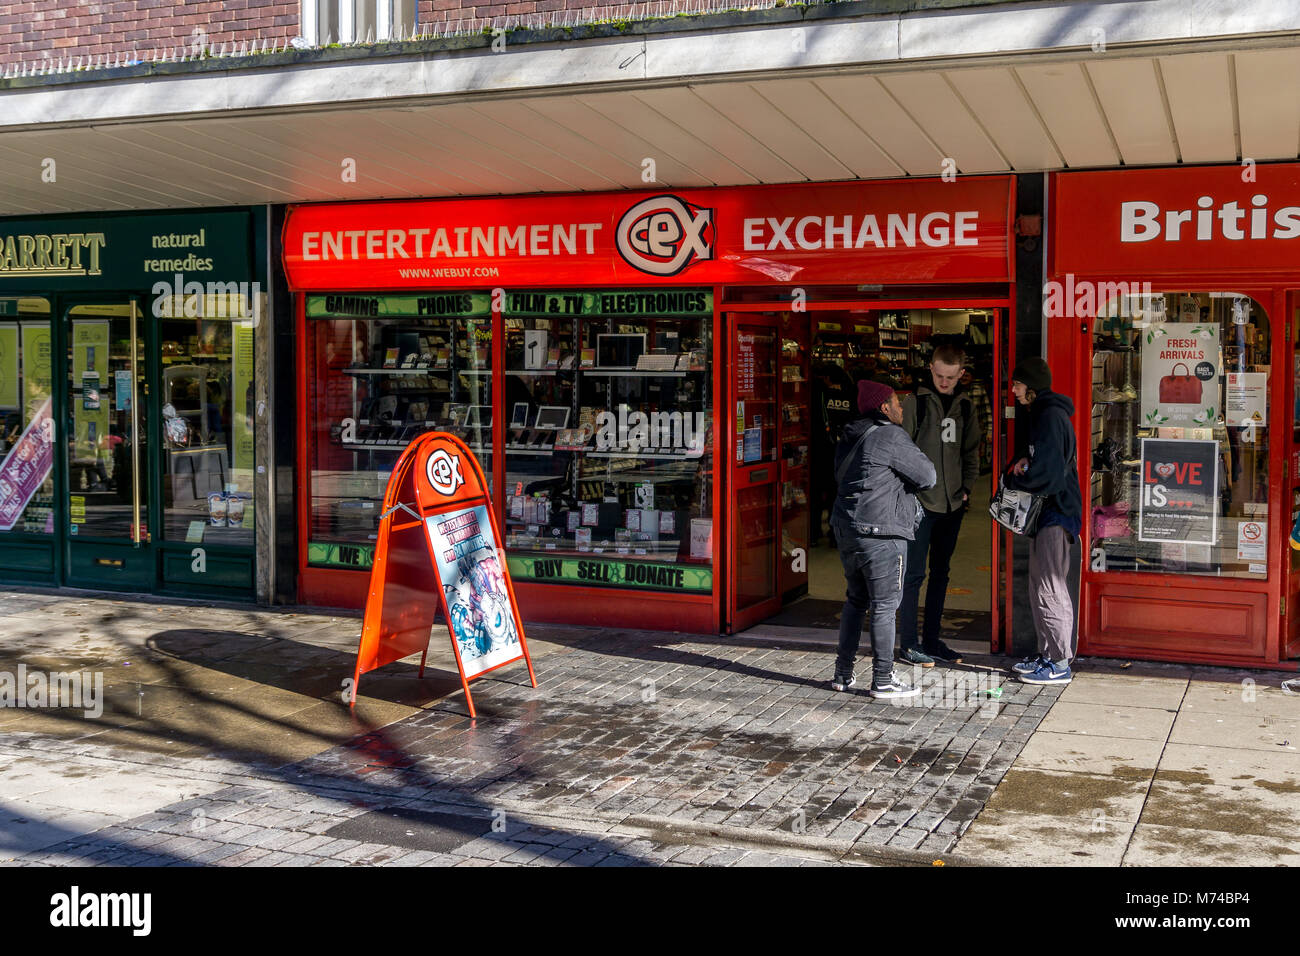 CEX Exchange New Street Huddersfield West Yorkshire England UK